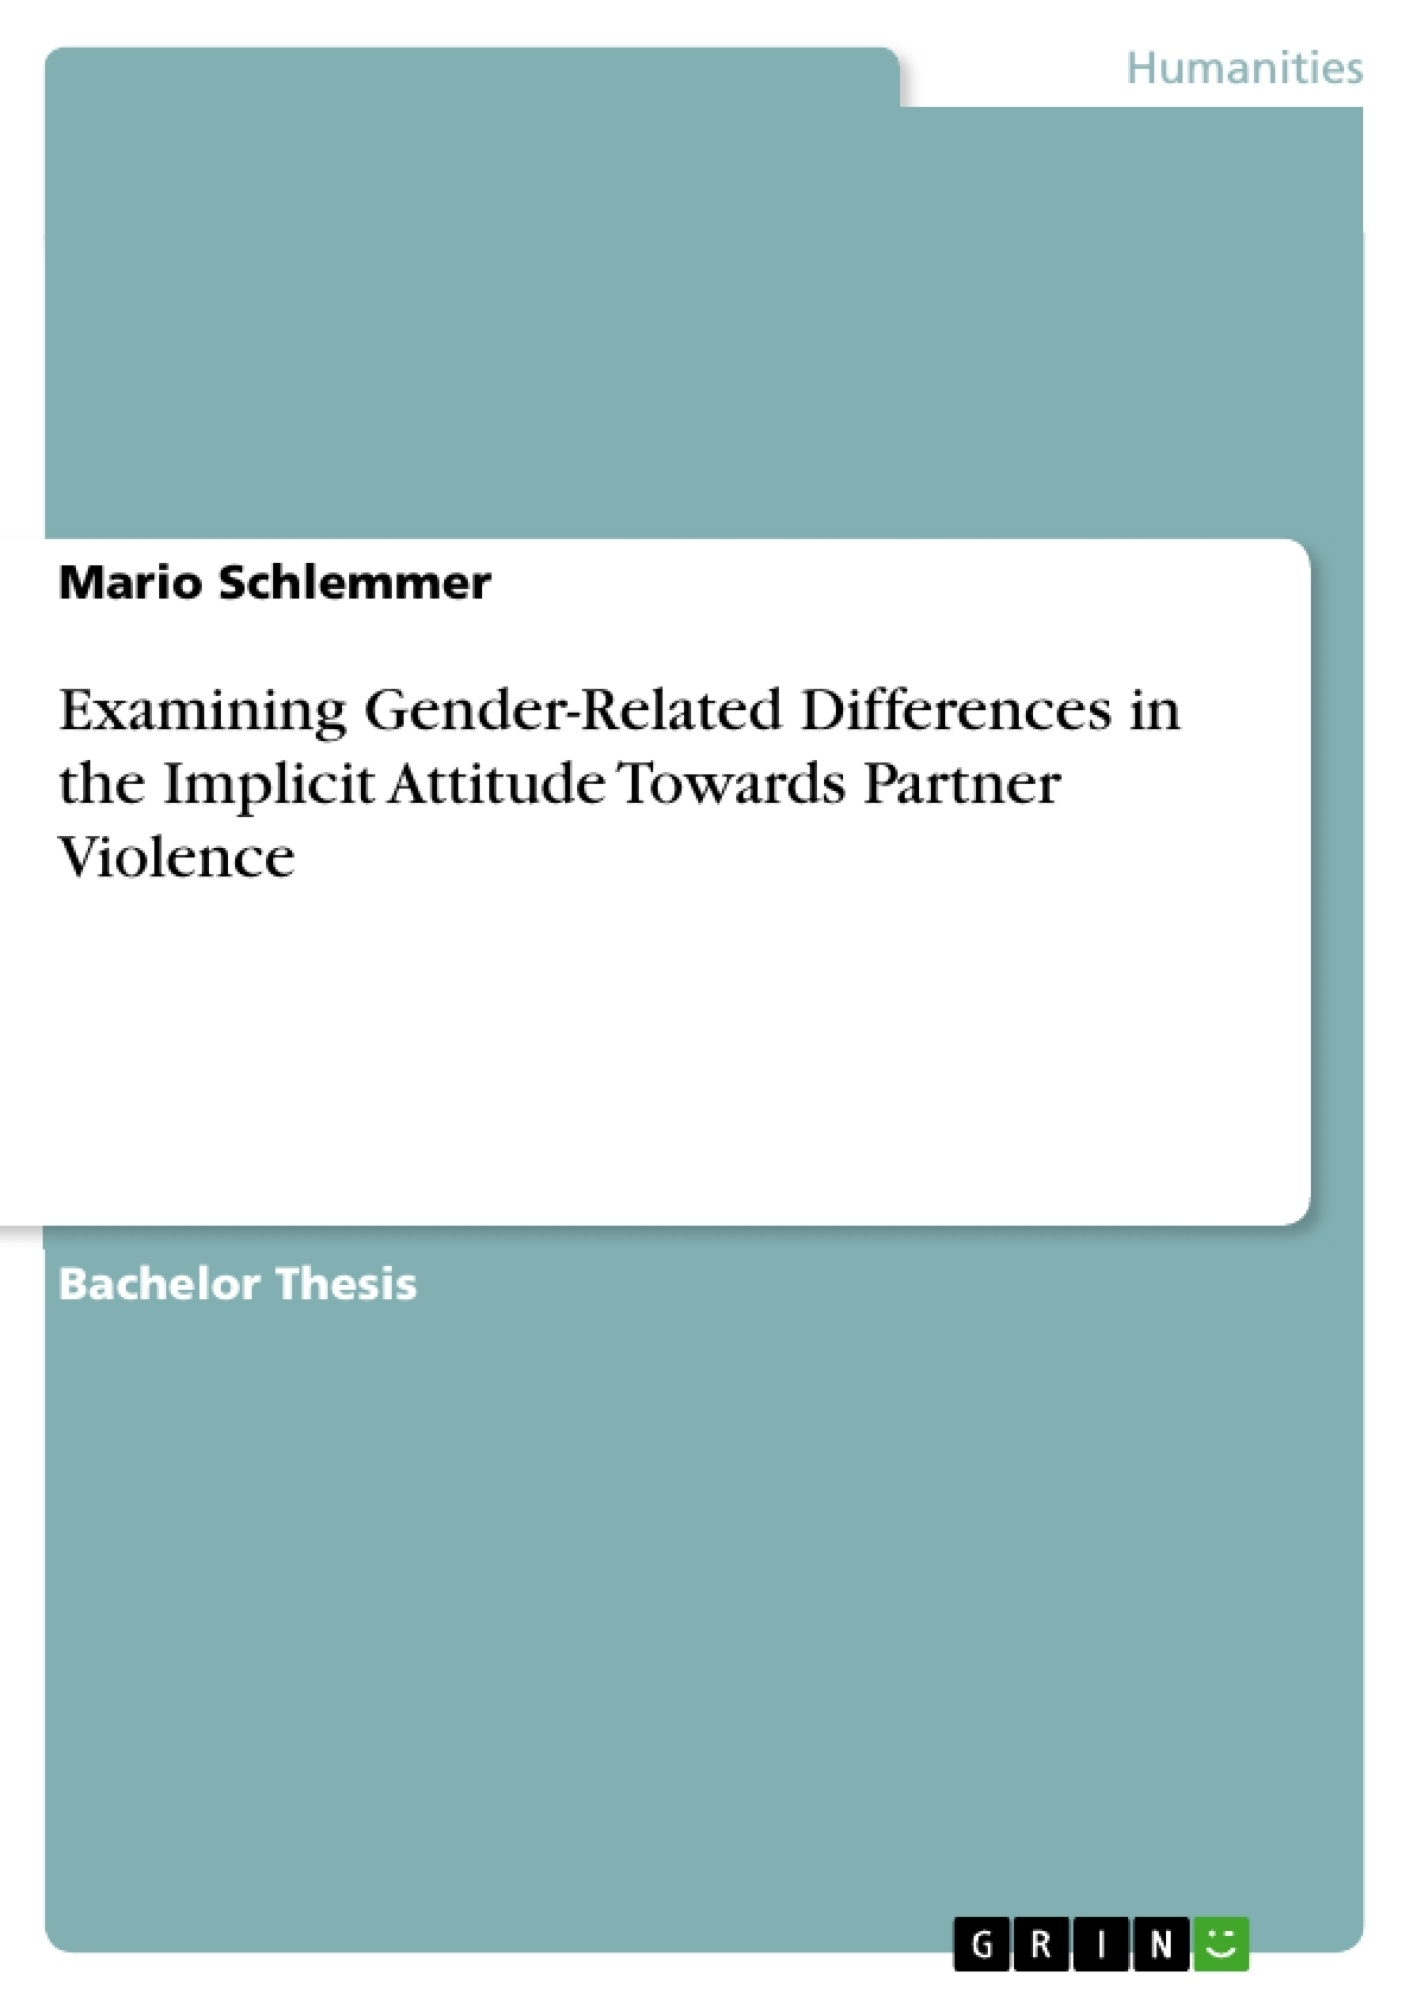 Title: Examining Gender-Related Differences in the Implicit Attitude Towards Partner Violence